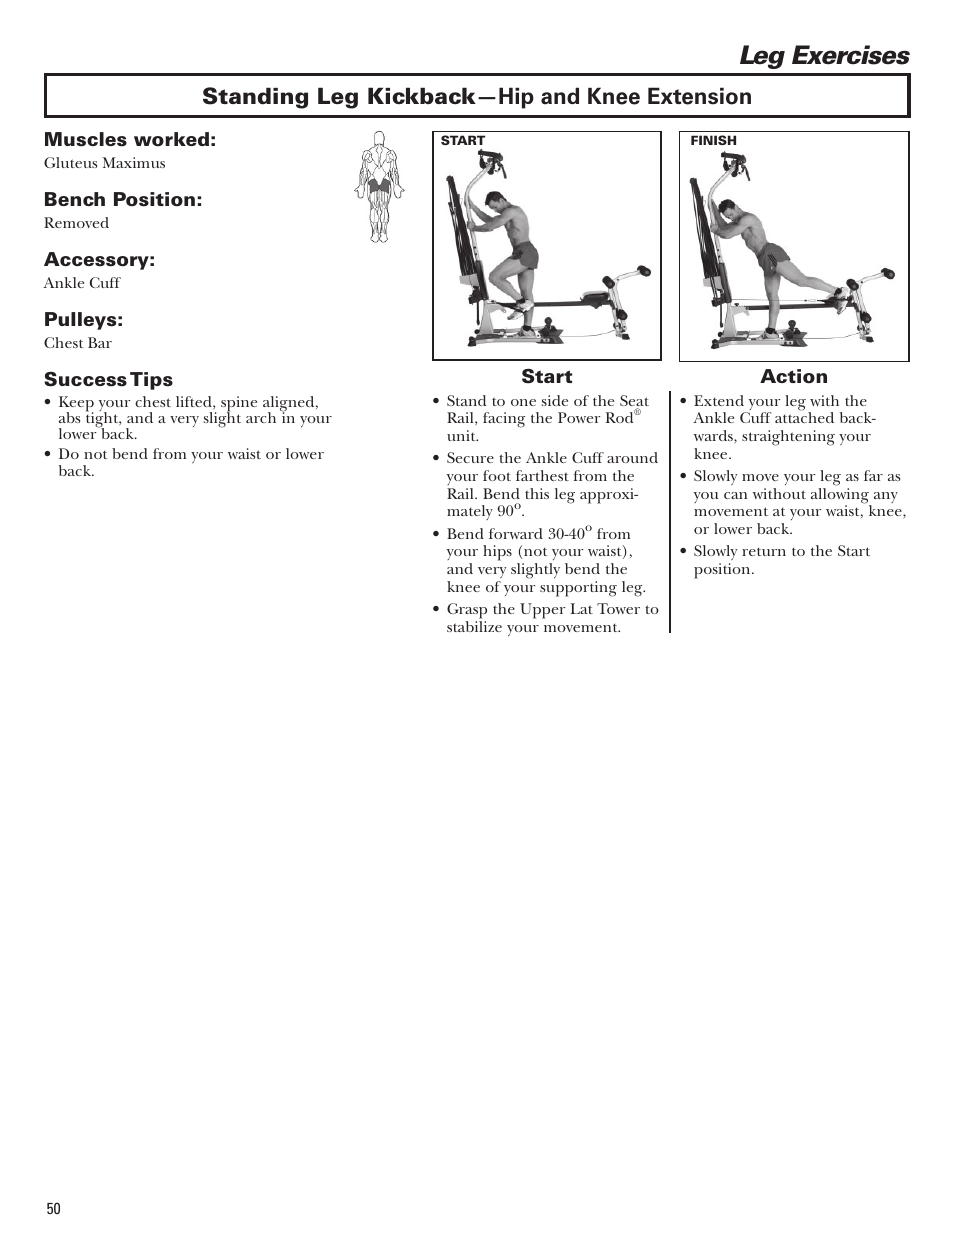 Leg Exercises Standing Leg Kickback Hip And Knee Extension